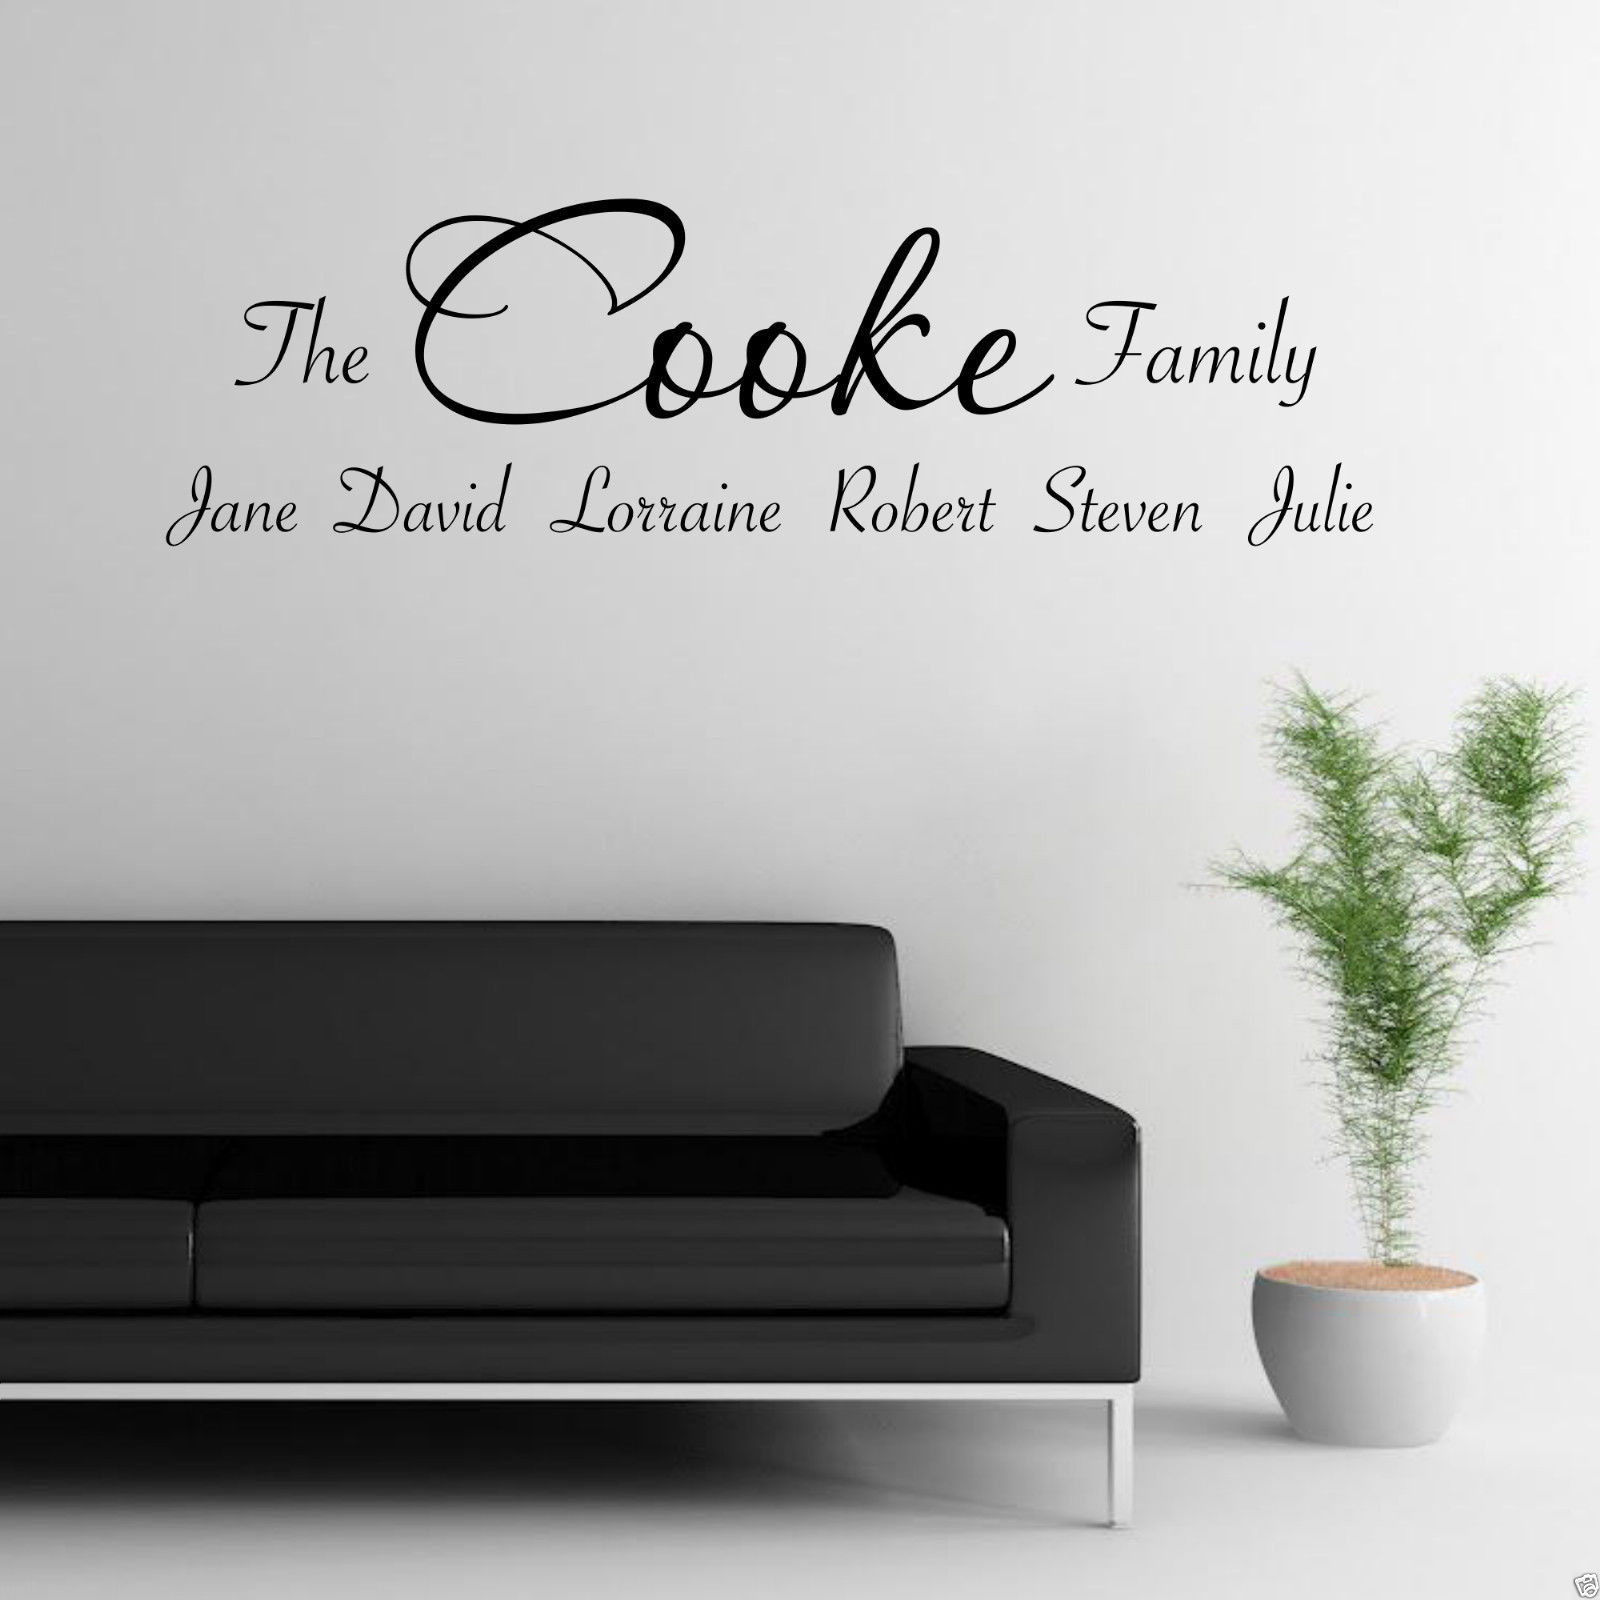 Personalised Family Wall Art Sticker Lounge Quote Decal Transfer